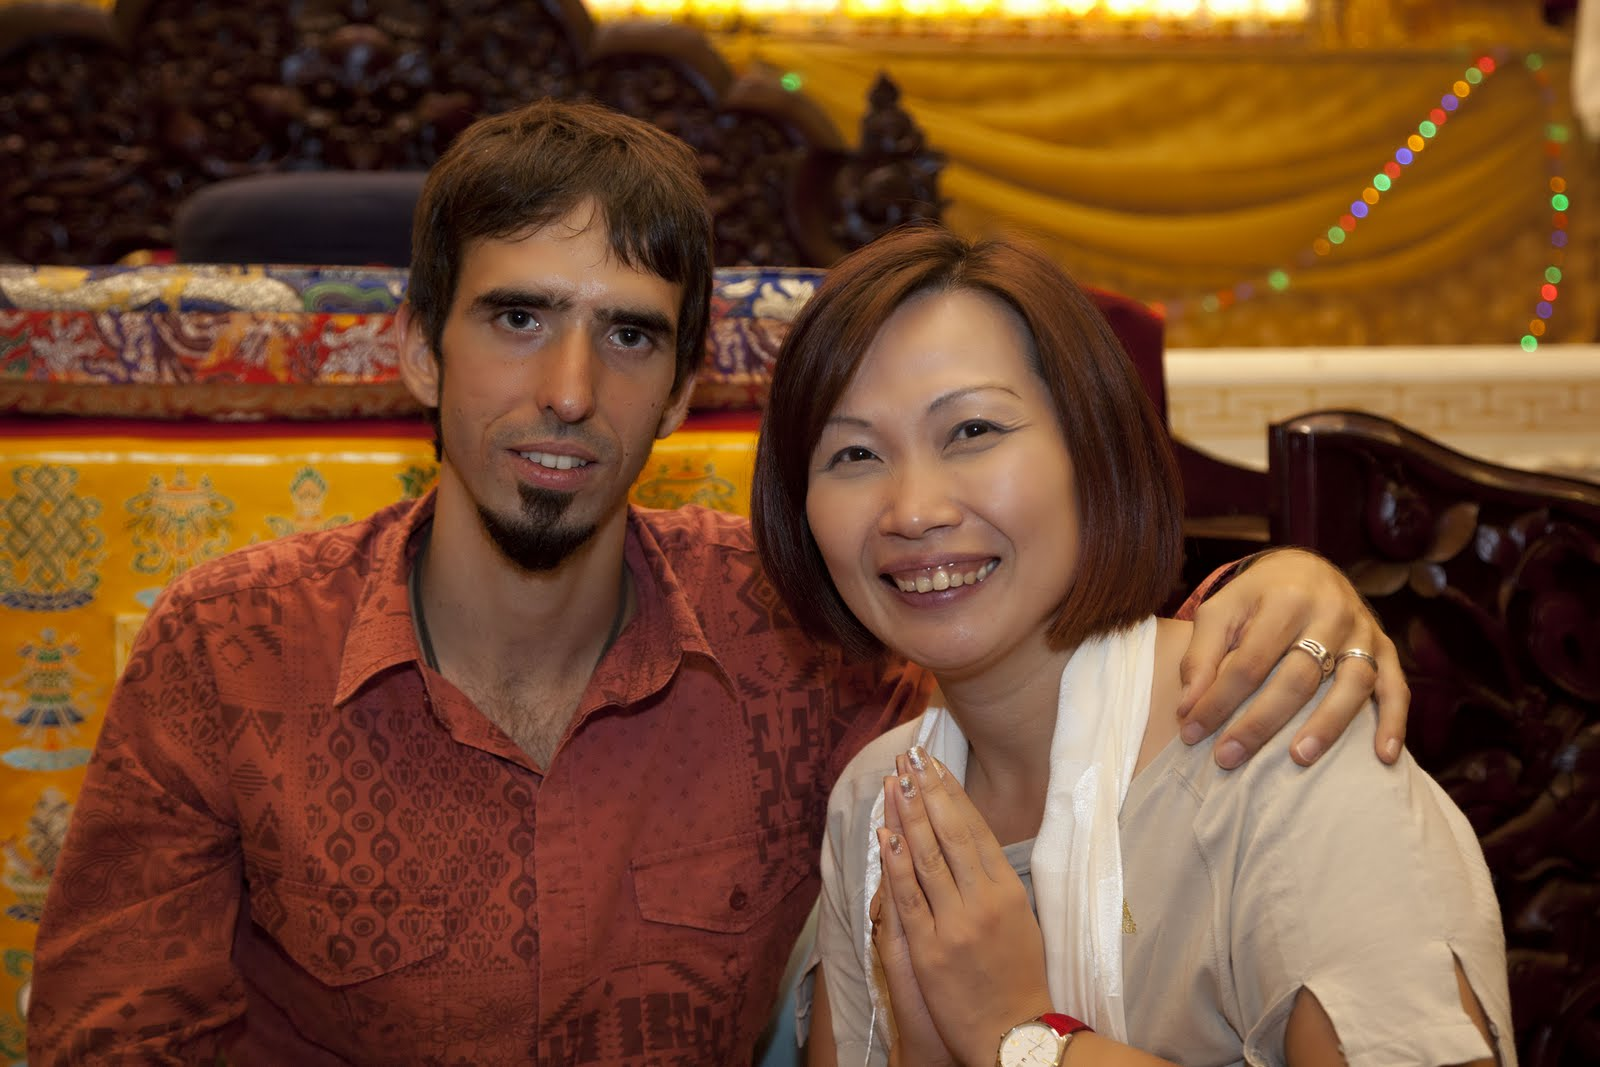 Ösel at Amitabha Buddhist Center in Singapore Nov 2012. Photo by Tan Seow Kheng and Stephen Ching